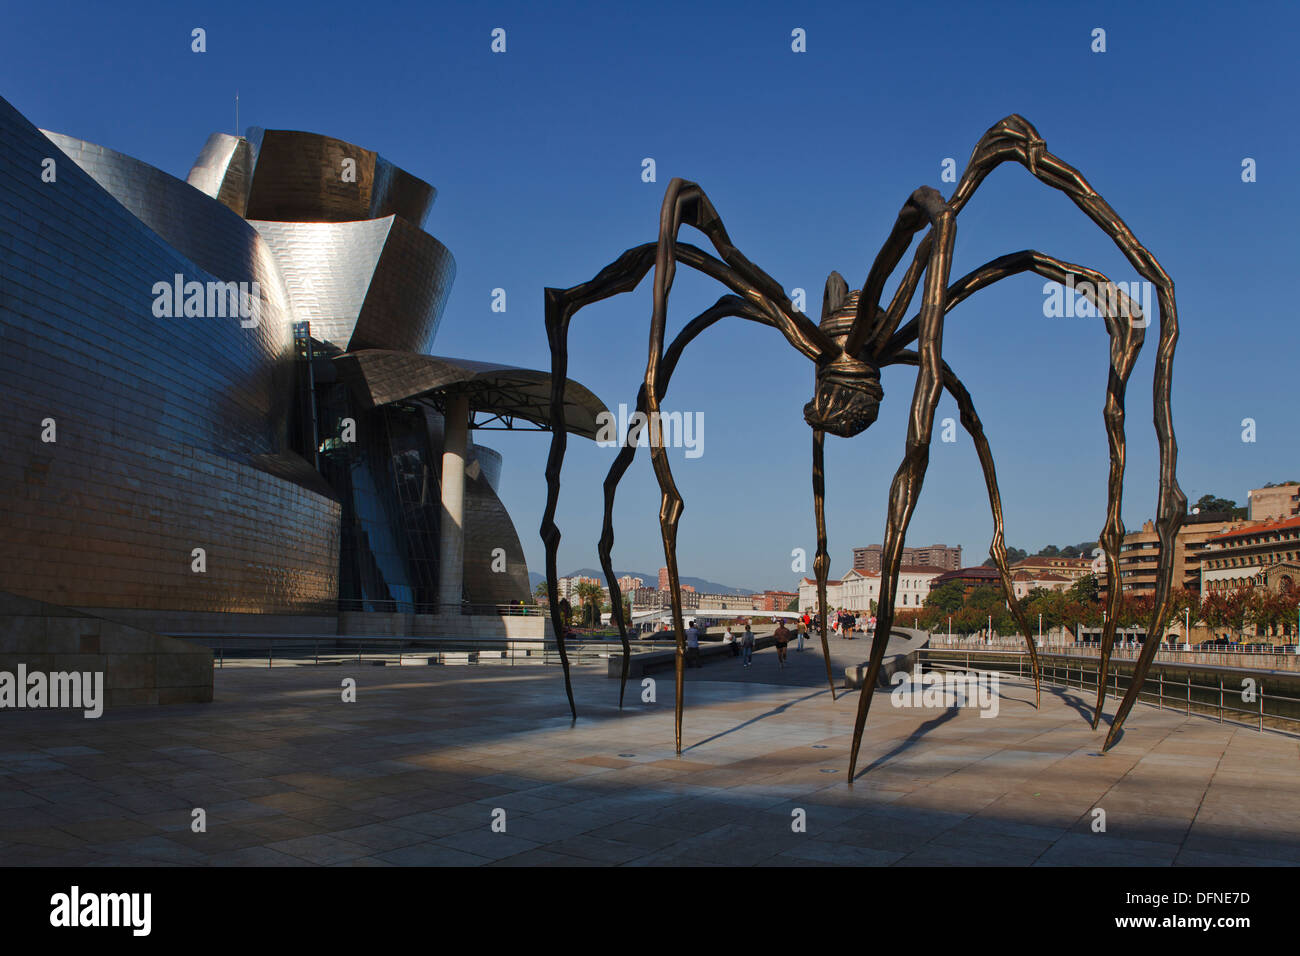 Sculpture Mama spider in front of the Guggenheim Museum of modern and contemporary art, Bilbao, Province of Biskaia, Basque Coun Stock Photo